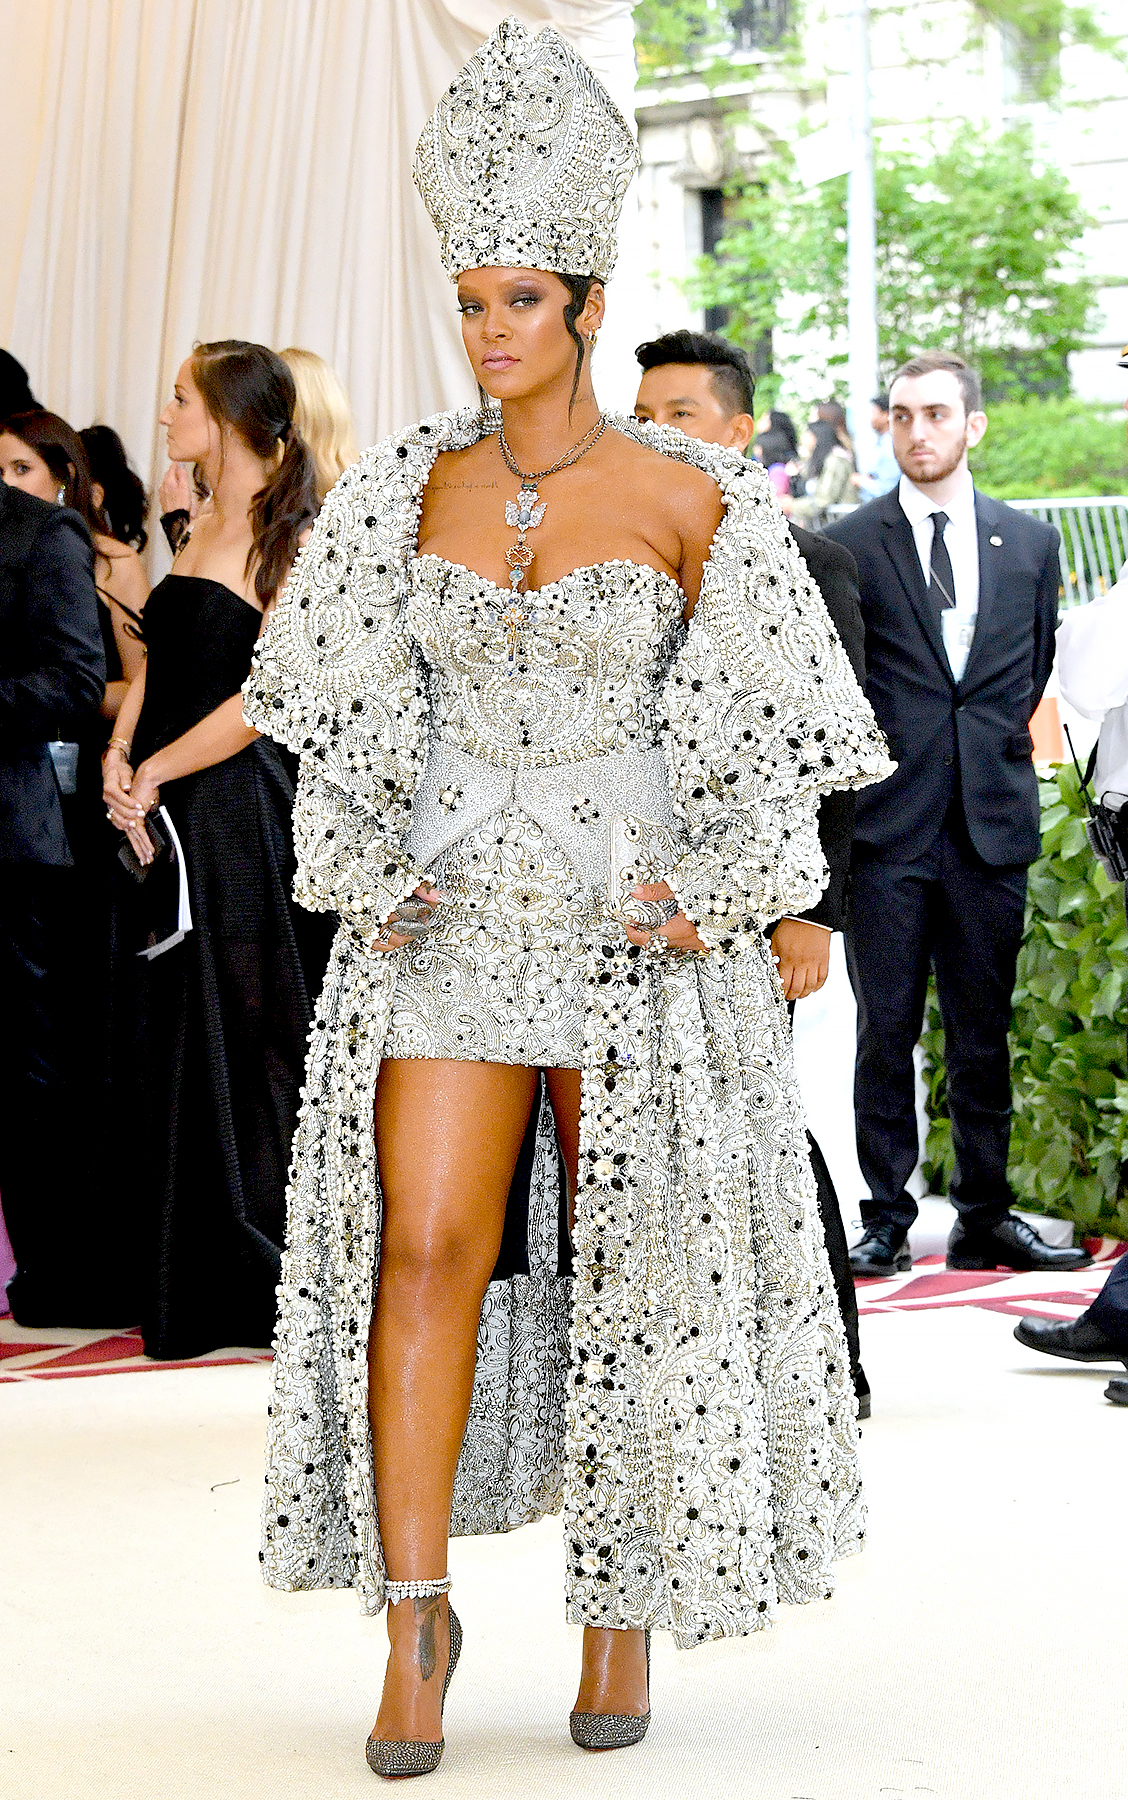 rihanna-met-gala-2018 - Rihanna attends the Heavenly Bodies: Fashion & The Catholic Imagination Costume Institute Gala at The Metropolitan Museum of Art on May 7, 2018 in New York City.